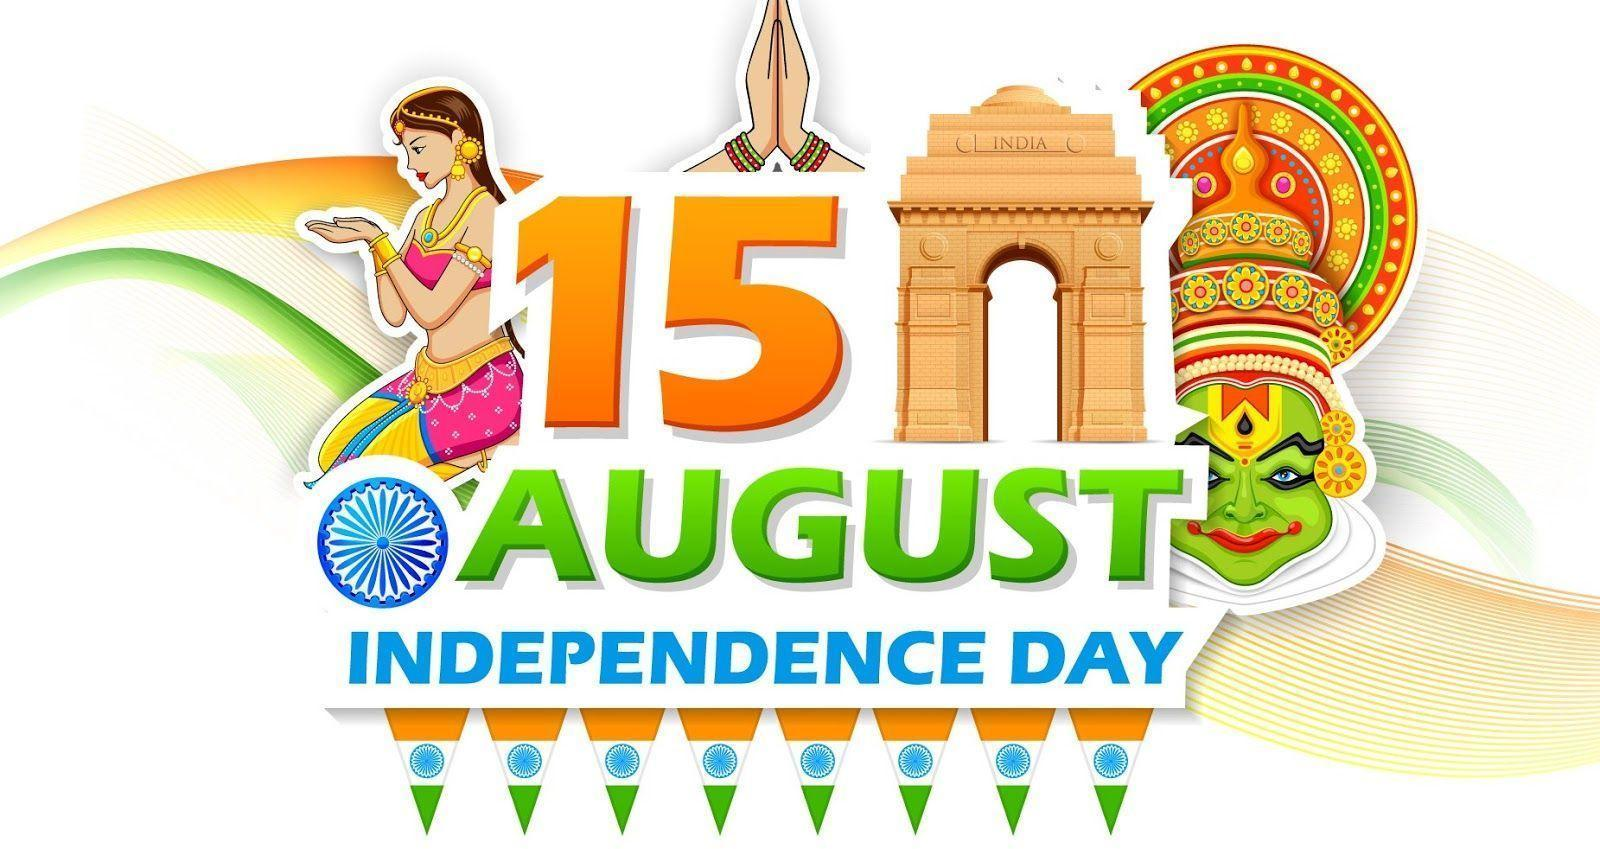 hindi essay on 15 august independence day of india Topic: modern indian history from about the middle of the eighteenth century until the present- significant events, personalities, issues 1) why was august 15 chosen as india's independence day.